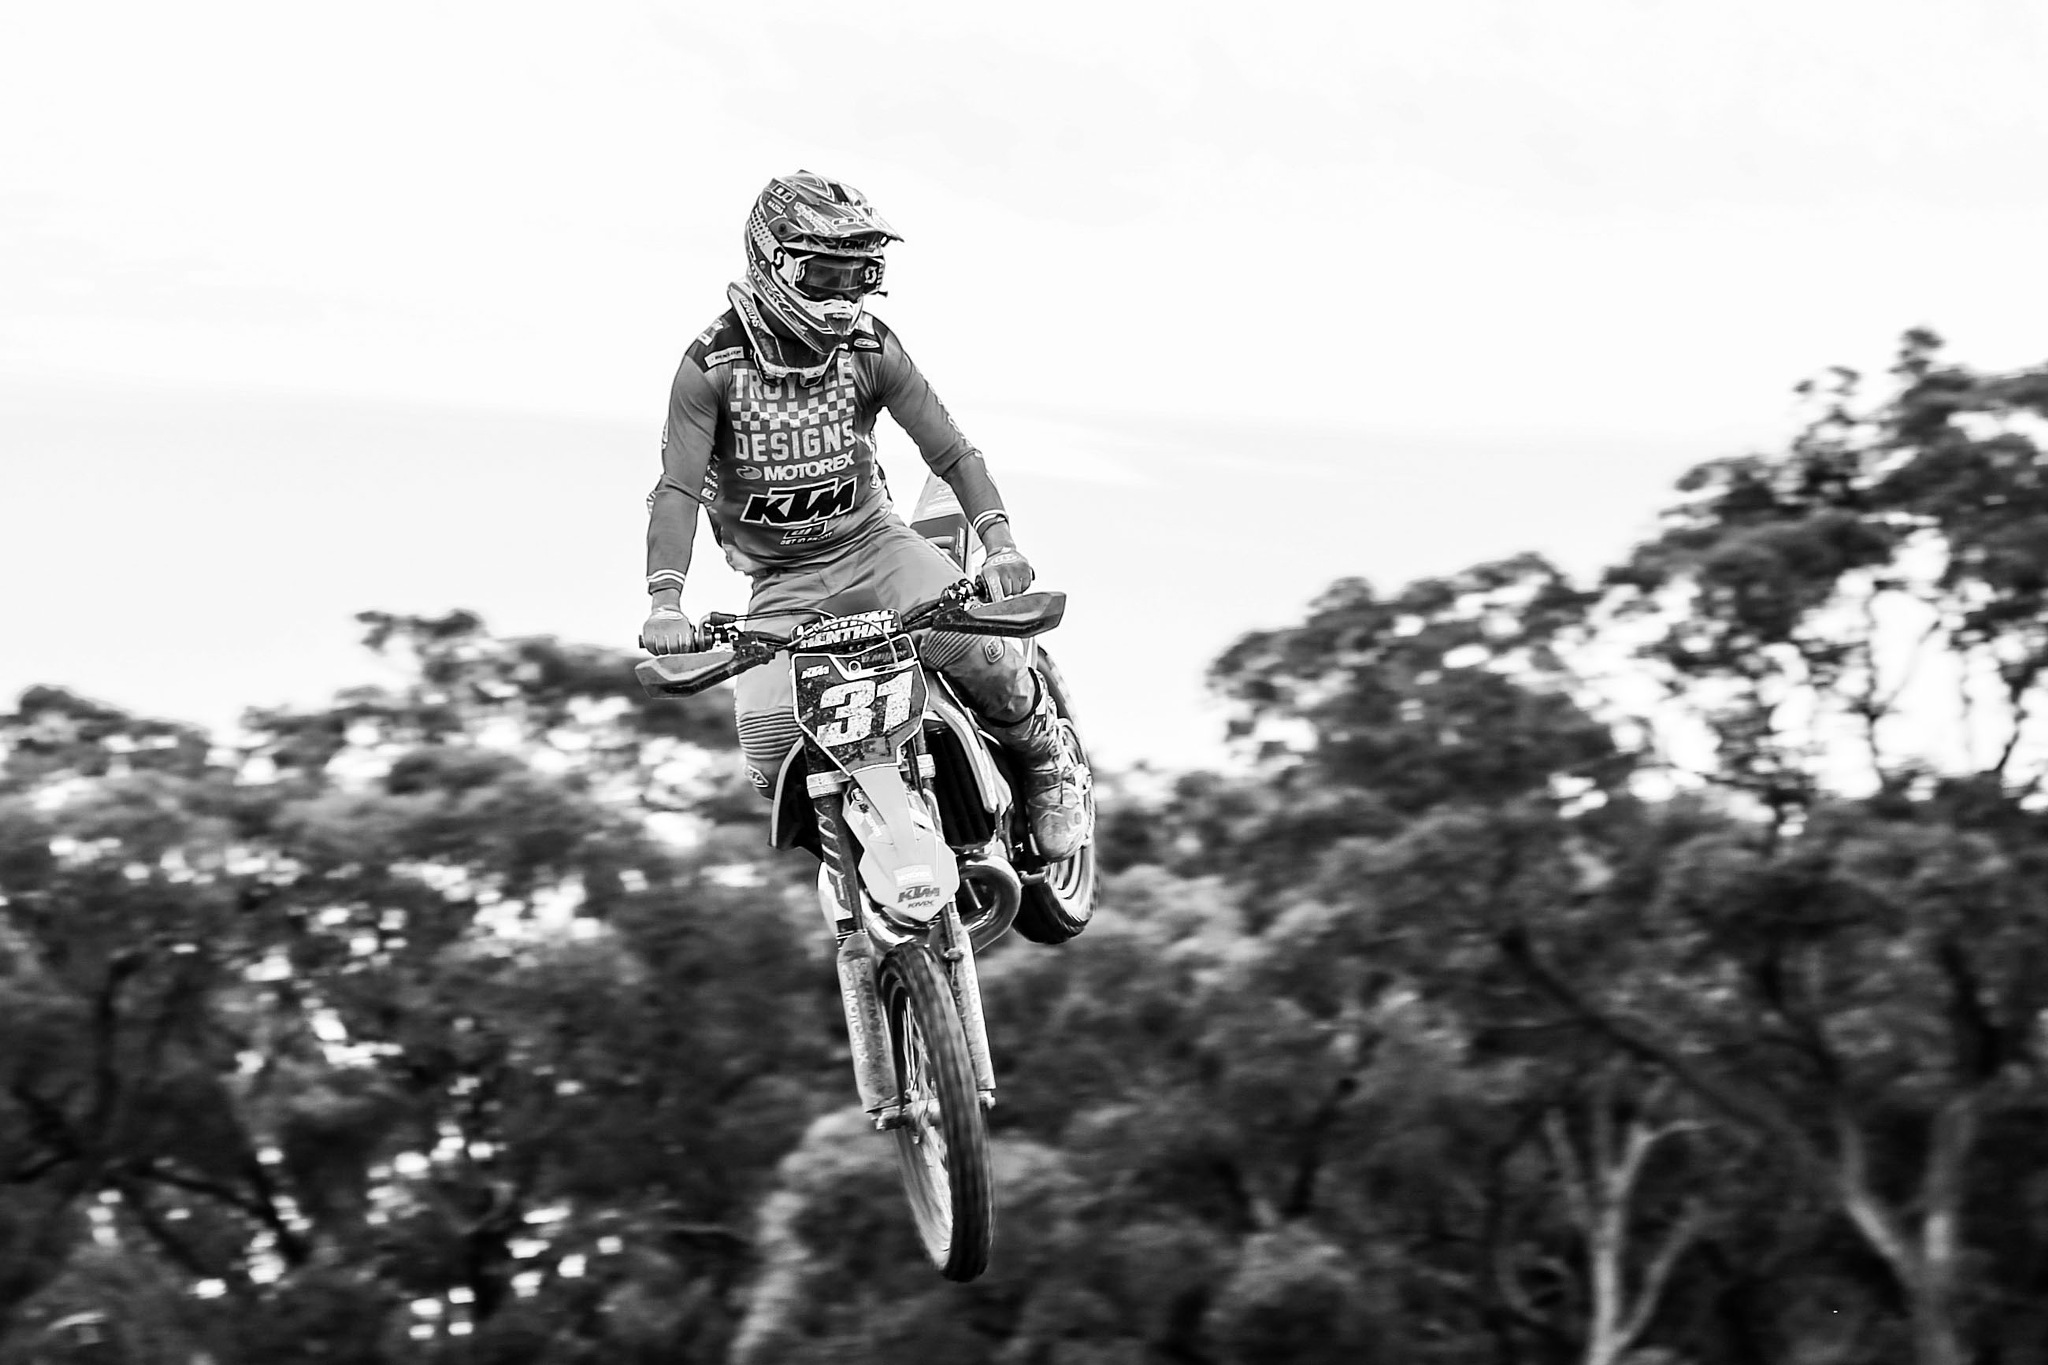 Motocross by Thunder1203